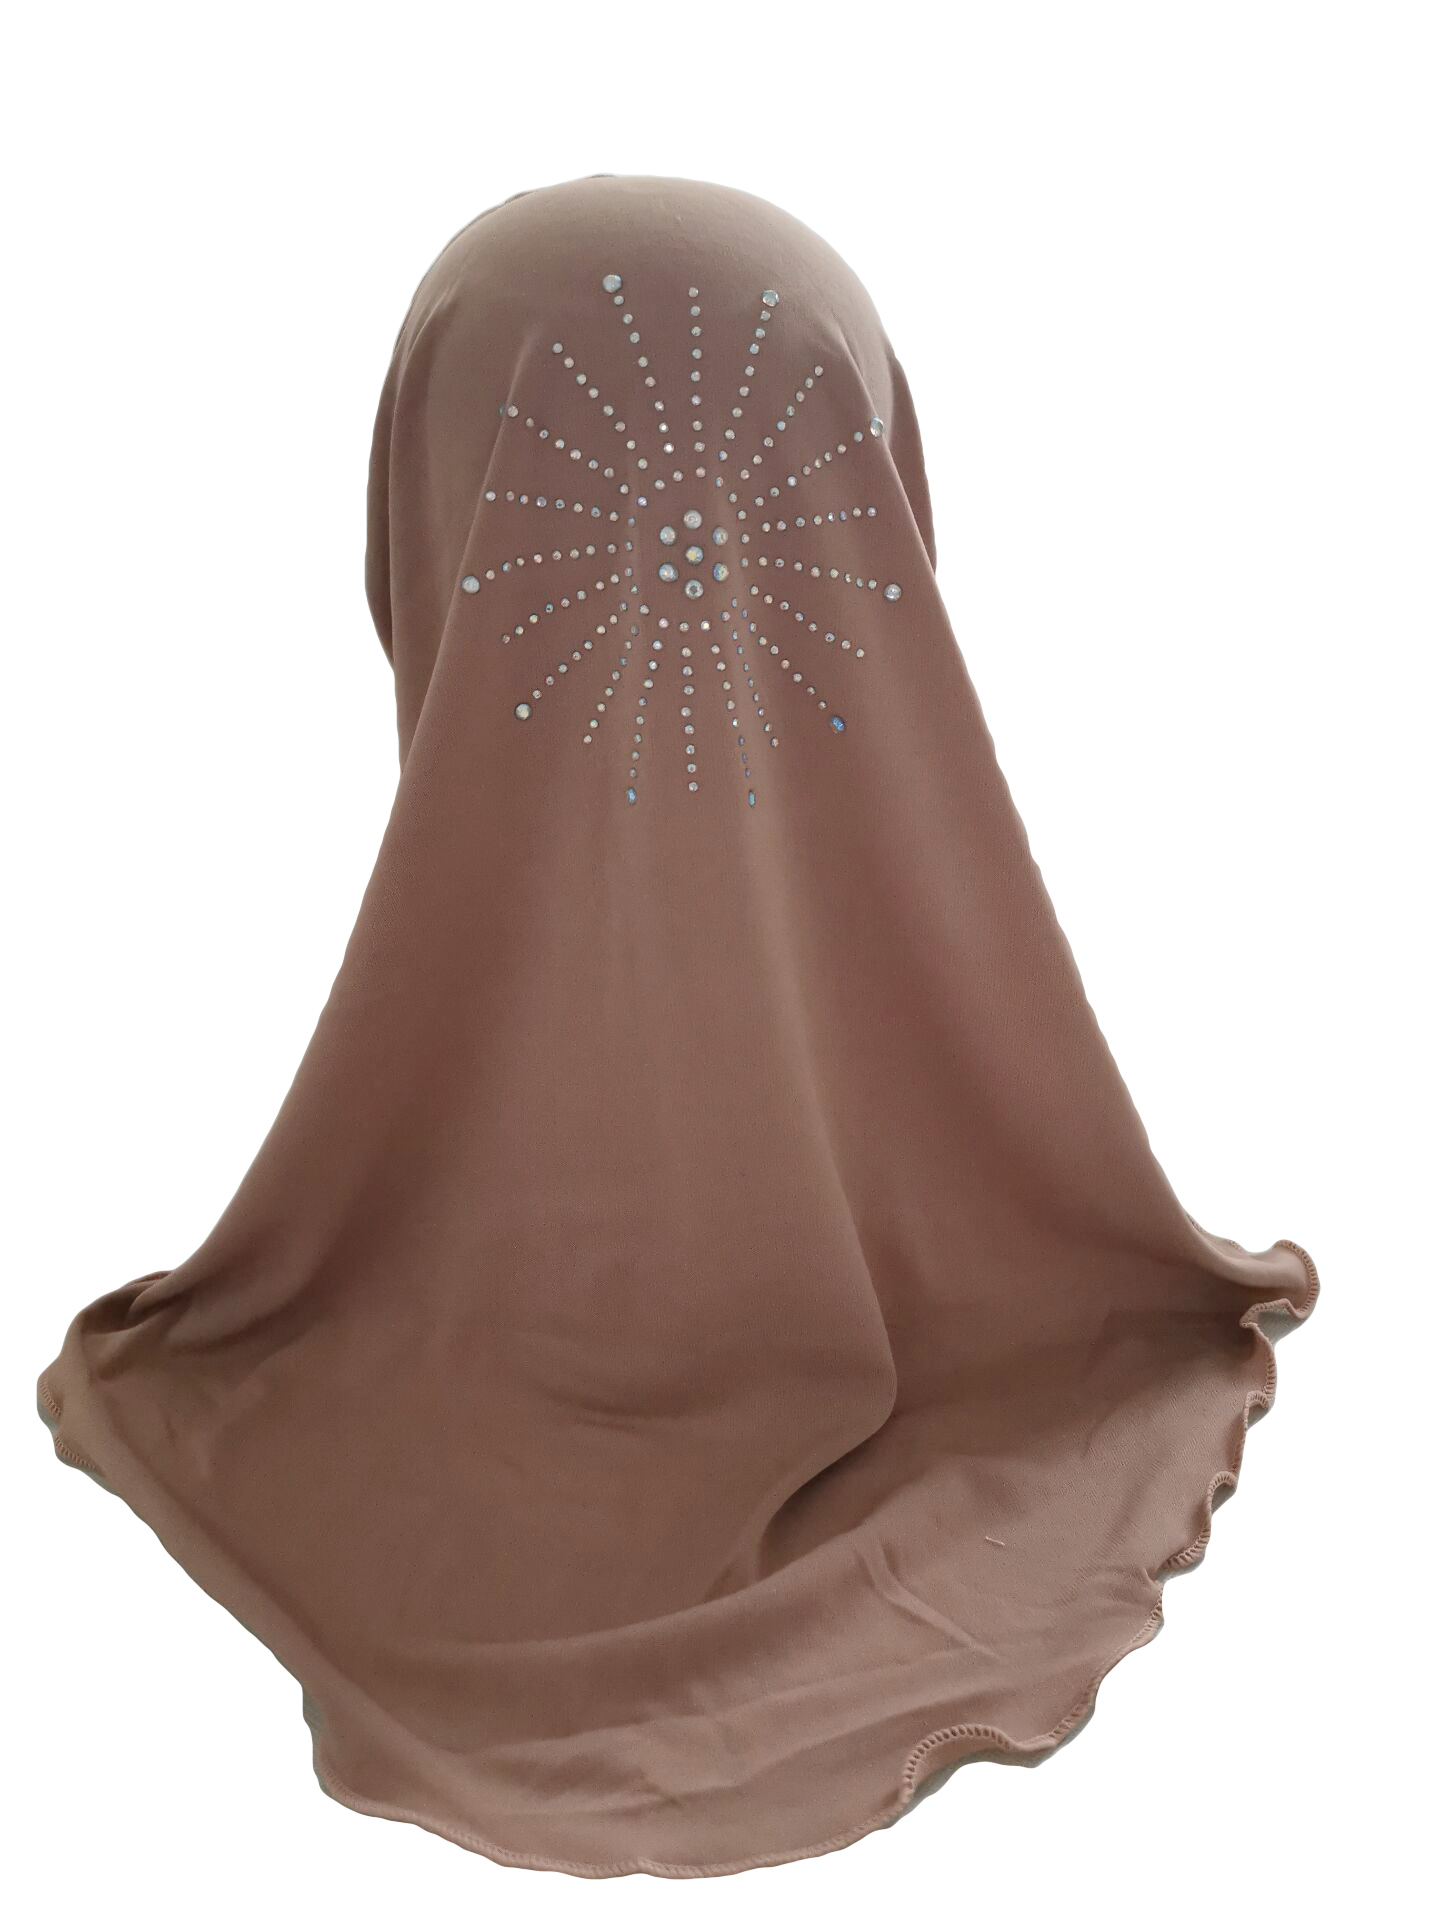 Girls-Kids-Muslim-Hijab-Hats-Islamic-Arab-Scarf-Caps-Shawls-Amira-Headwear-3-8Y thumbnail 91